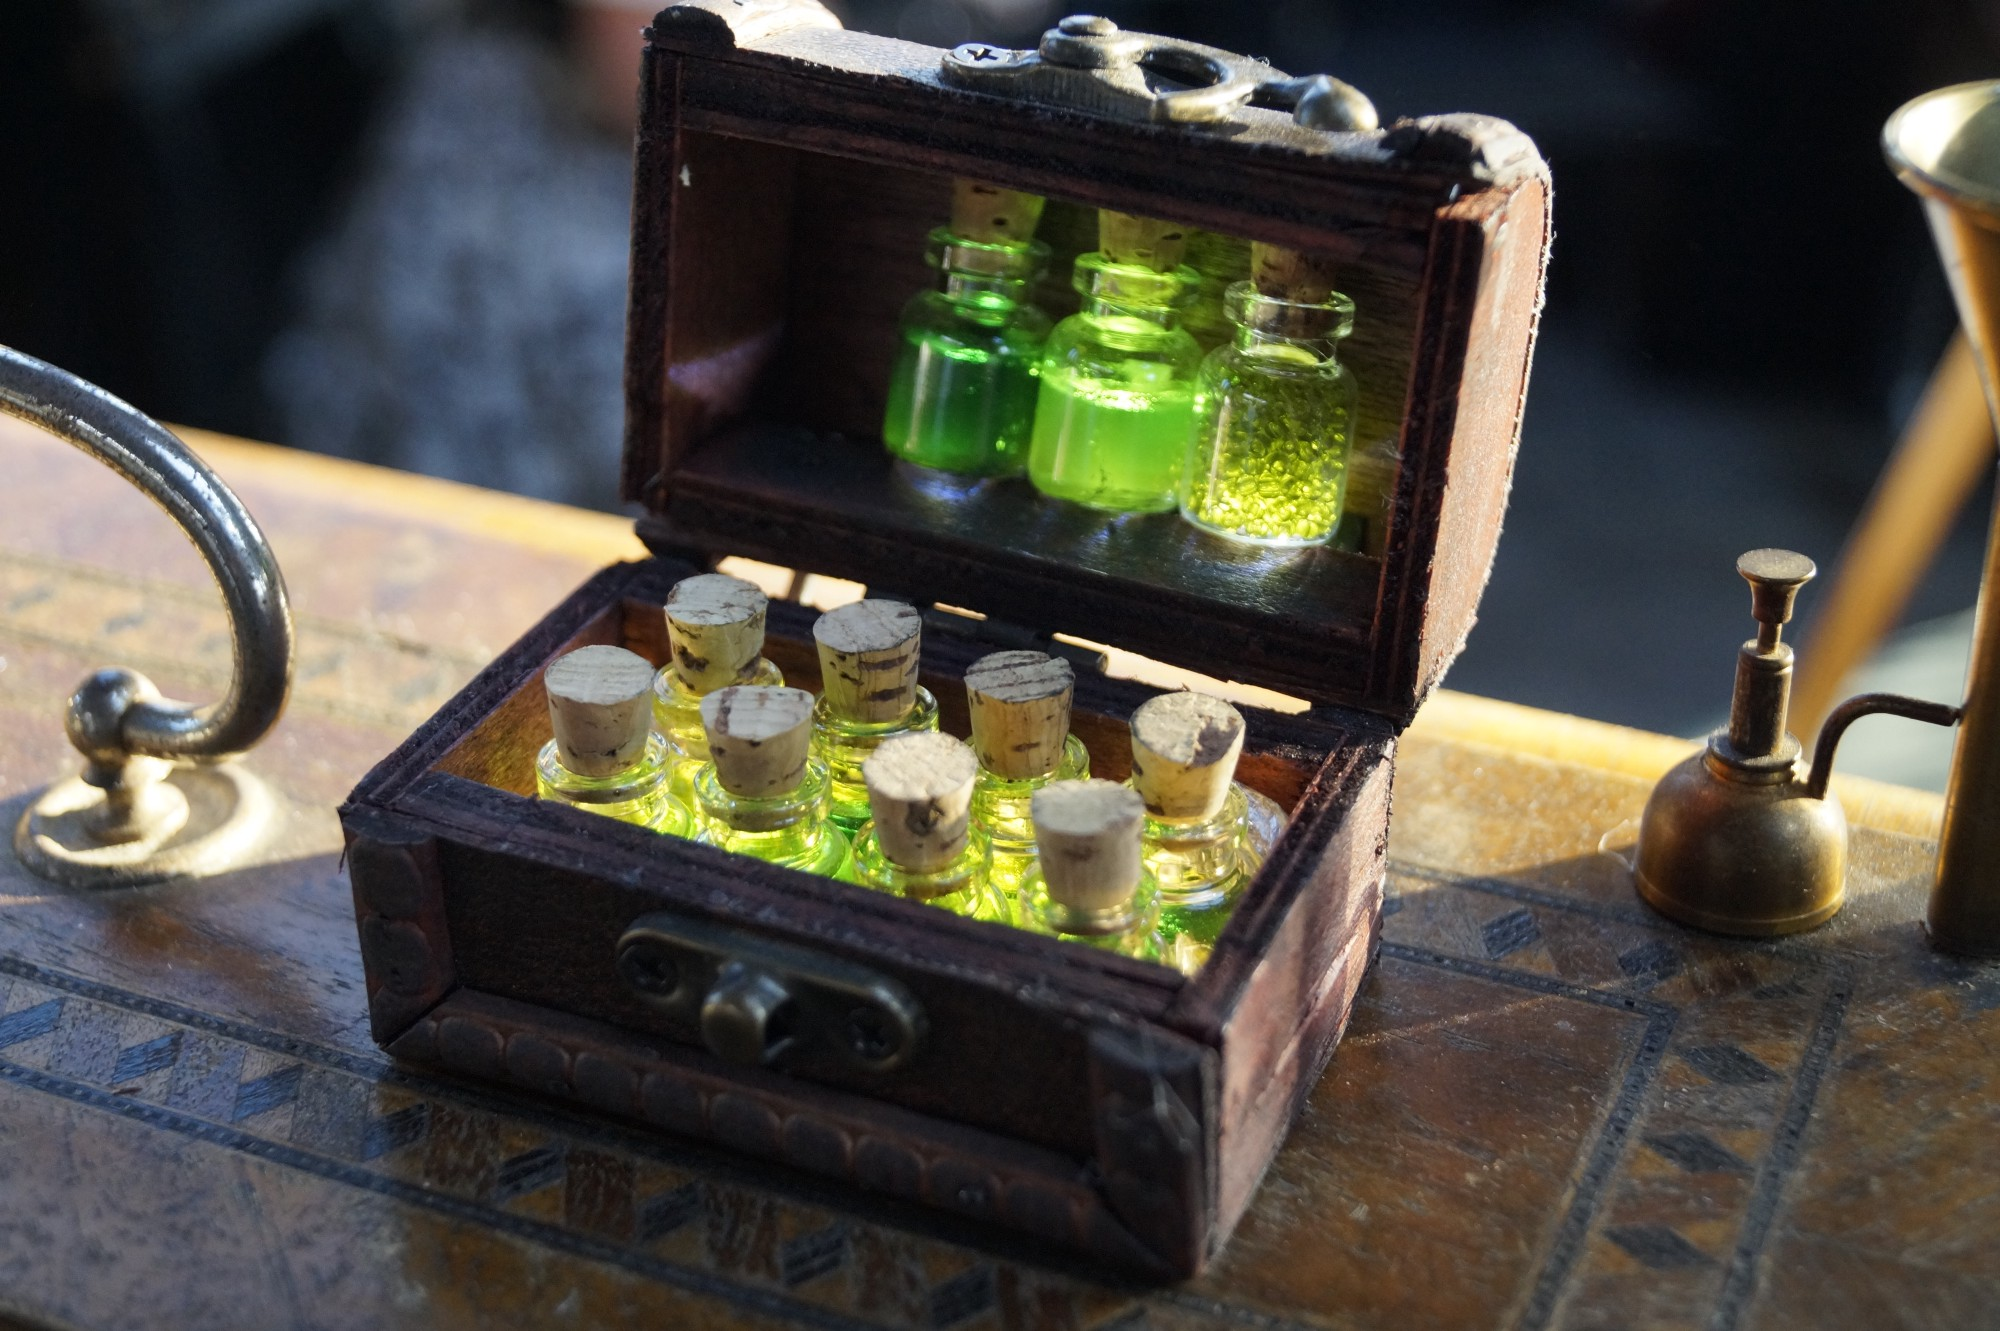 A small wooden chest full of small bottles filled with green liquid